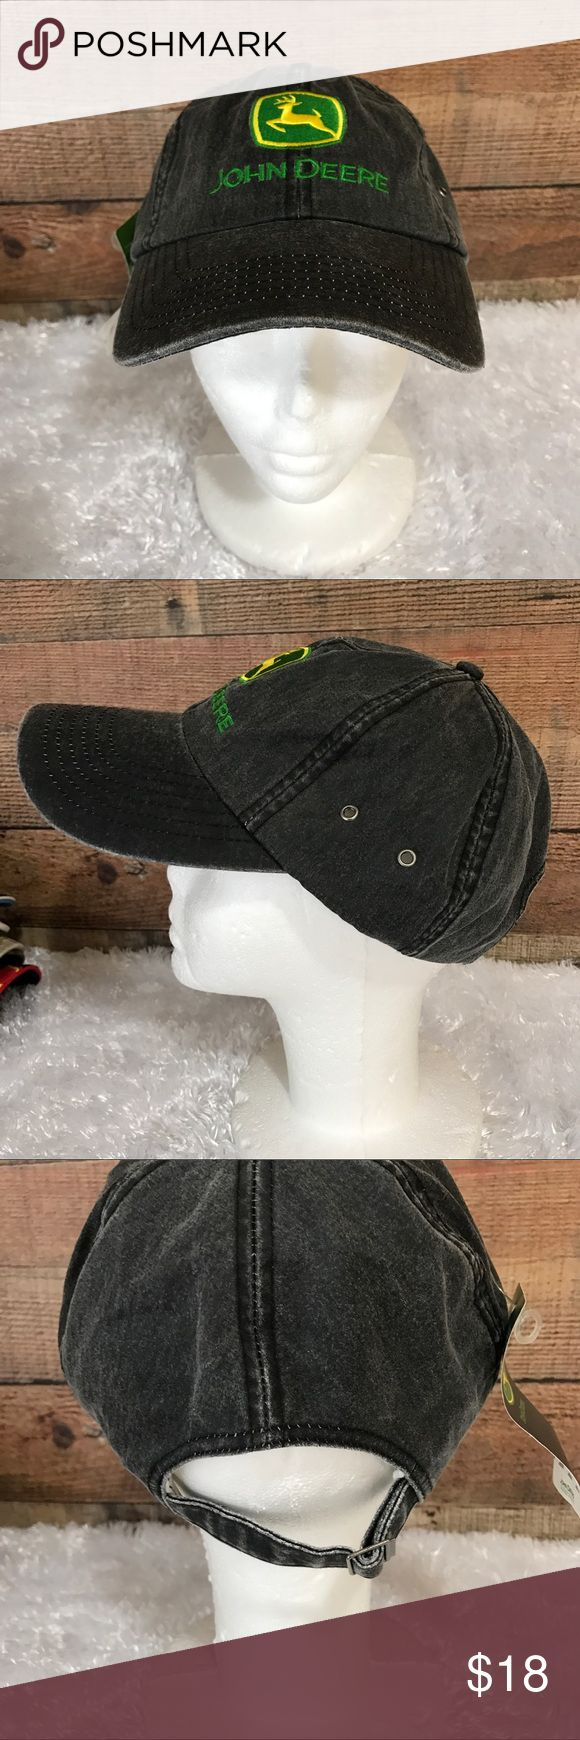 John Deere Gray Cotton Trucker Hat NWT New cotton gray Band adjustable hat John Deere Accessories Hats